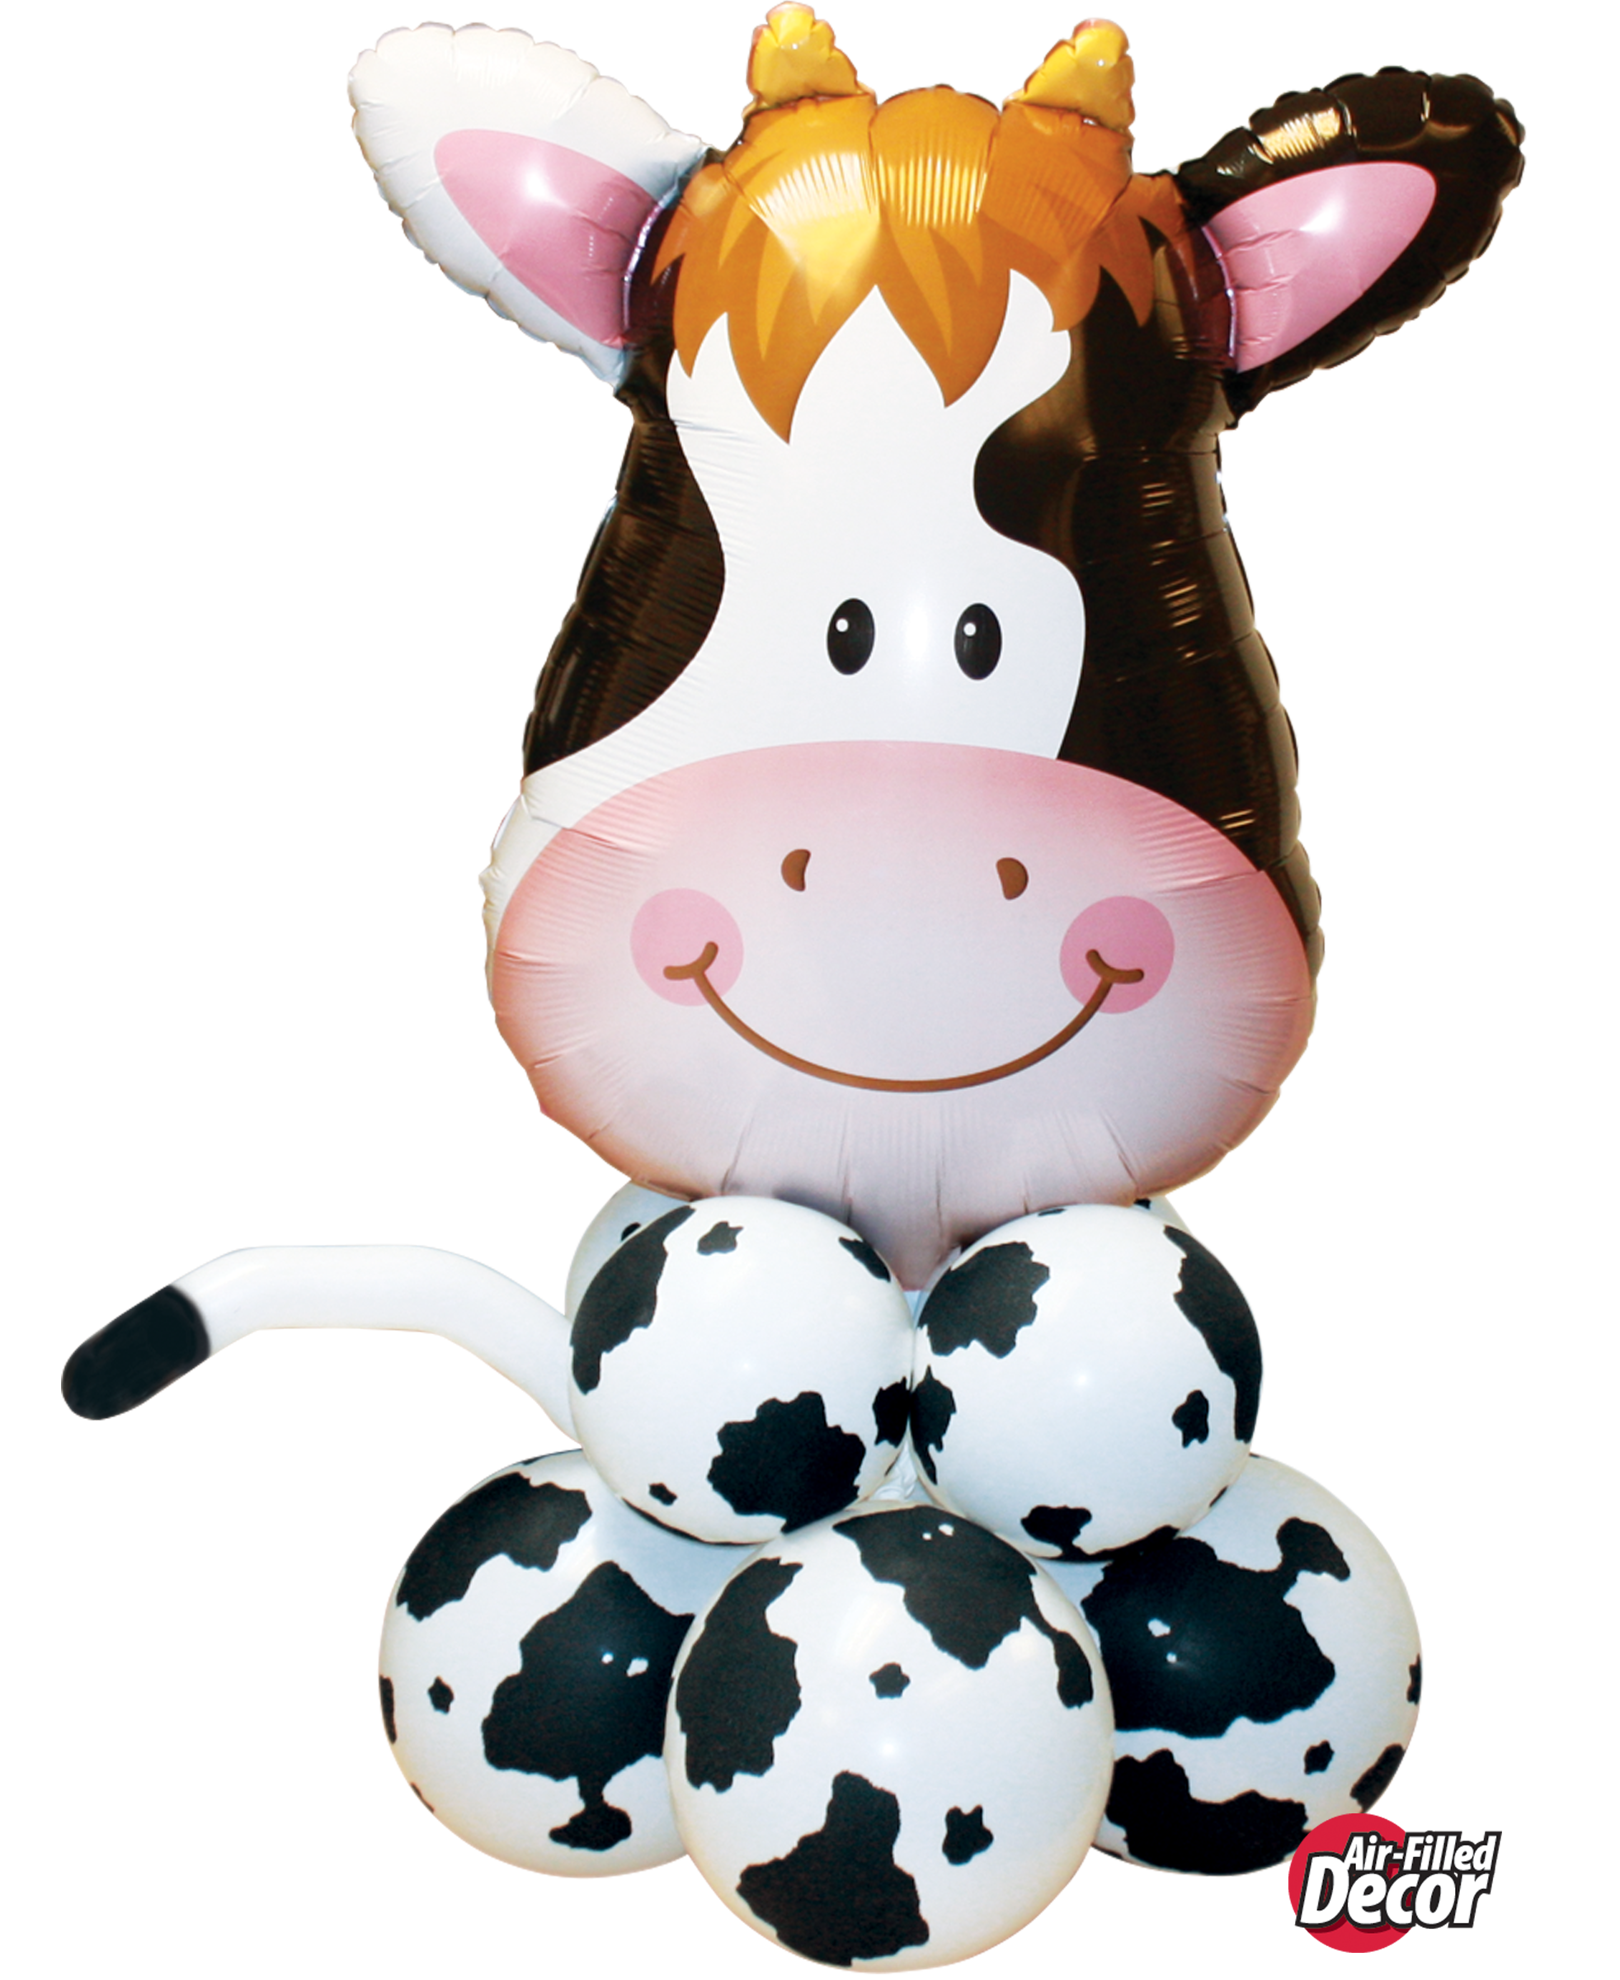 Picture of Contented Cow Balloon Centerpiece